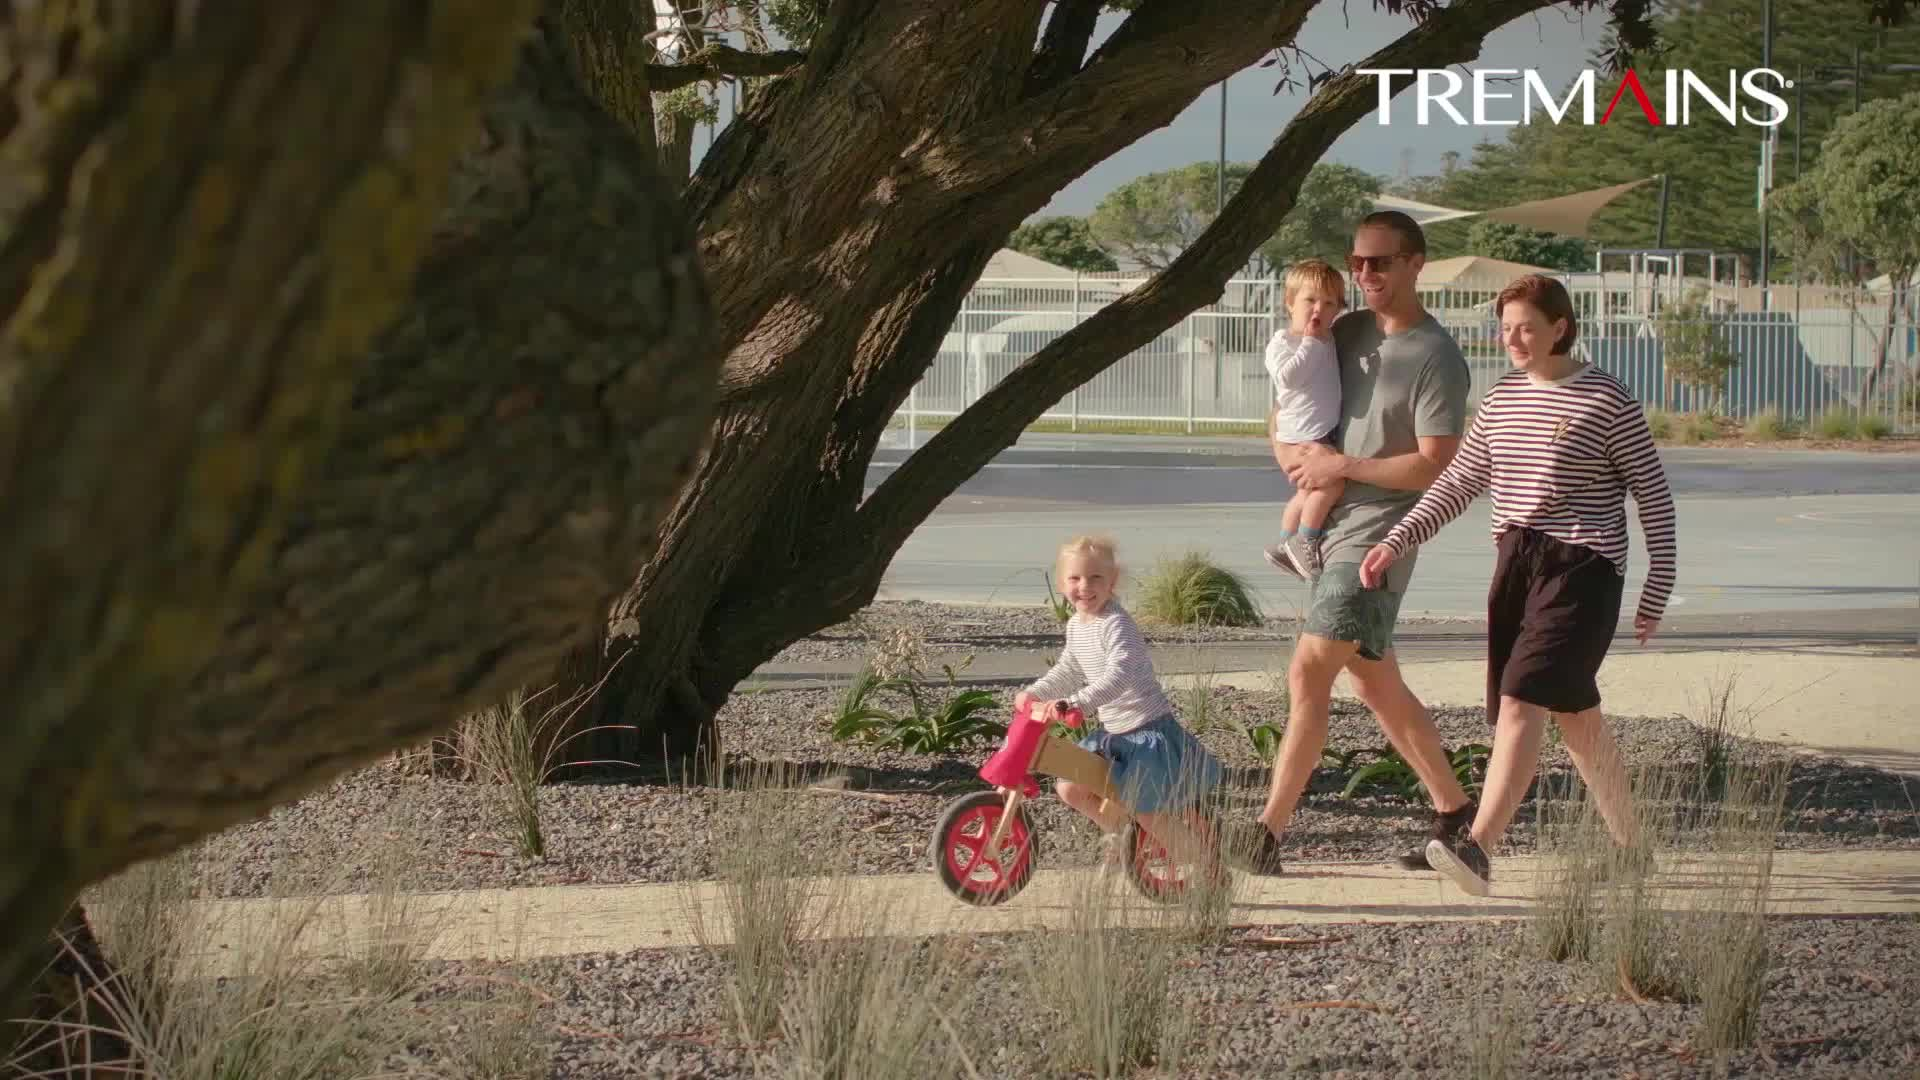 Tremains Summer Campaign 1 GIFs